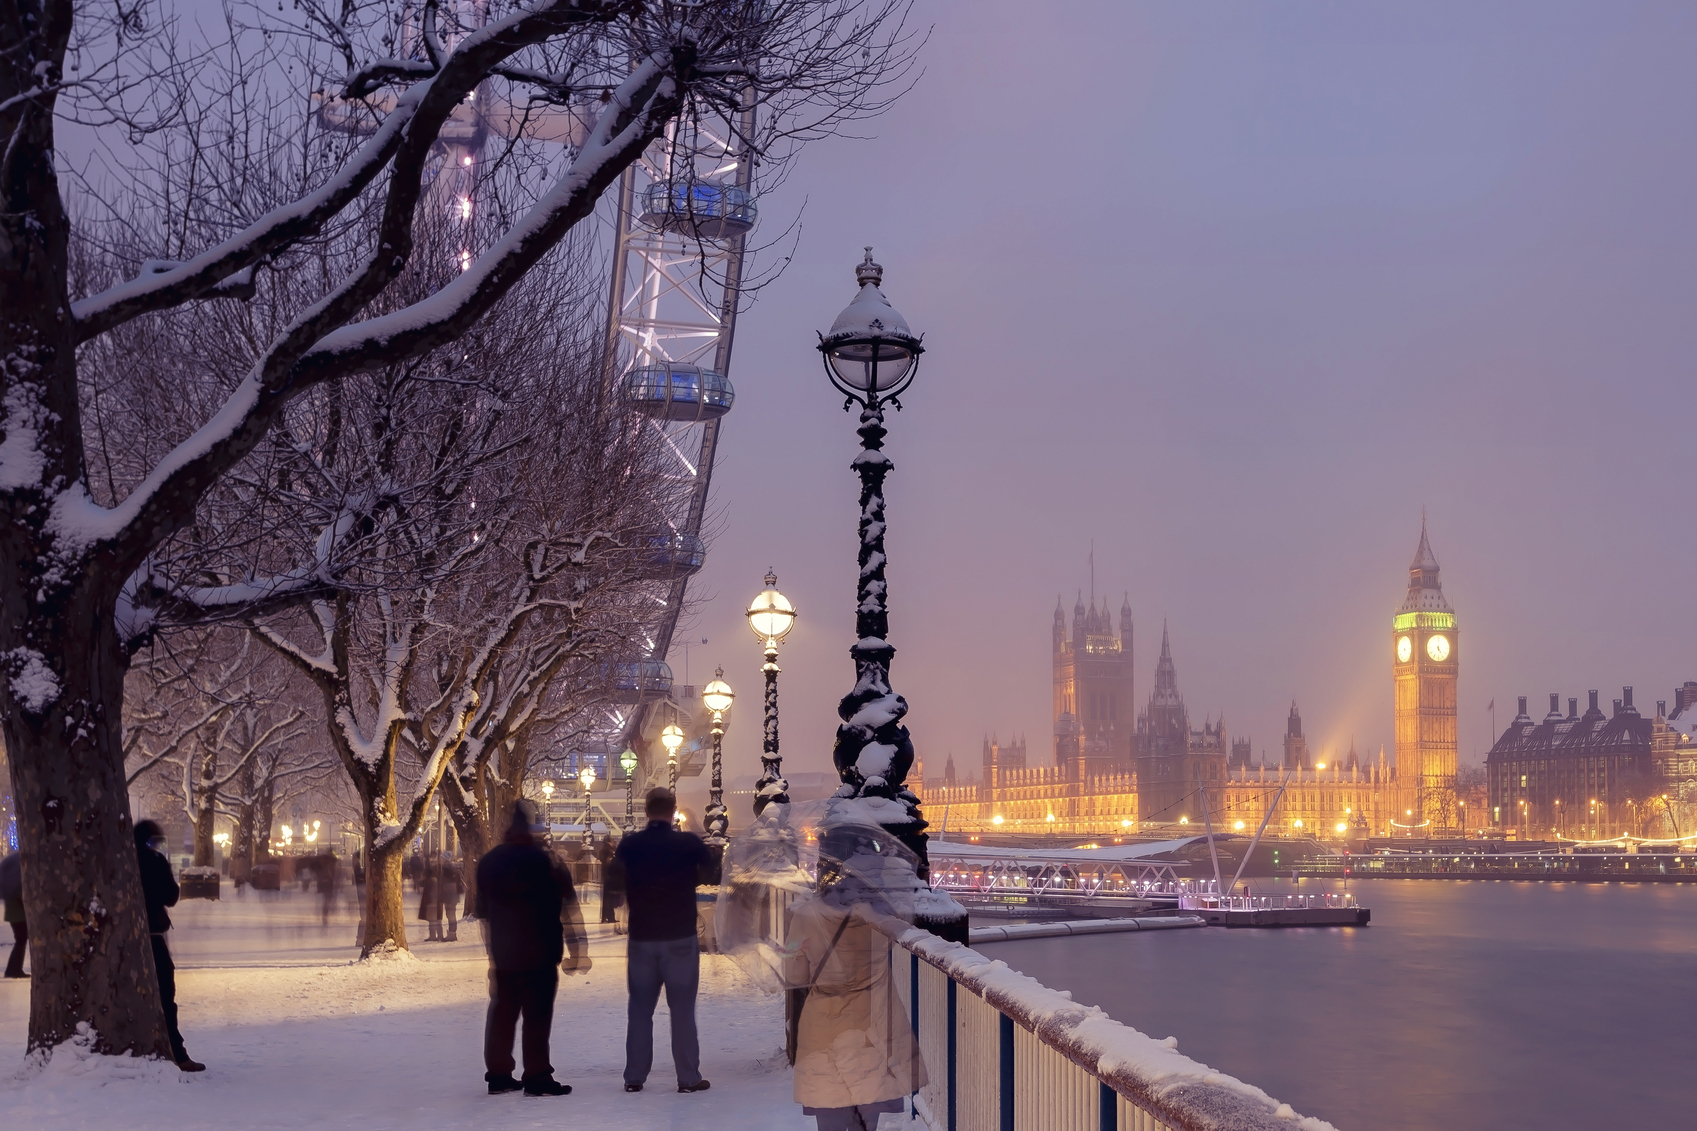 Snowy Jubilee Gardens and Westminster Palace in London